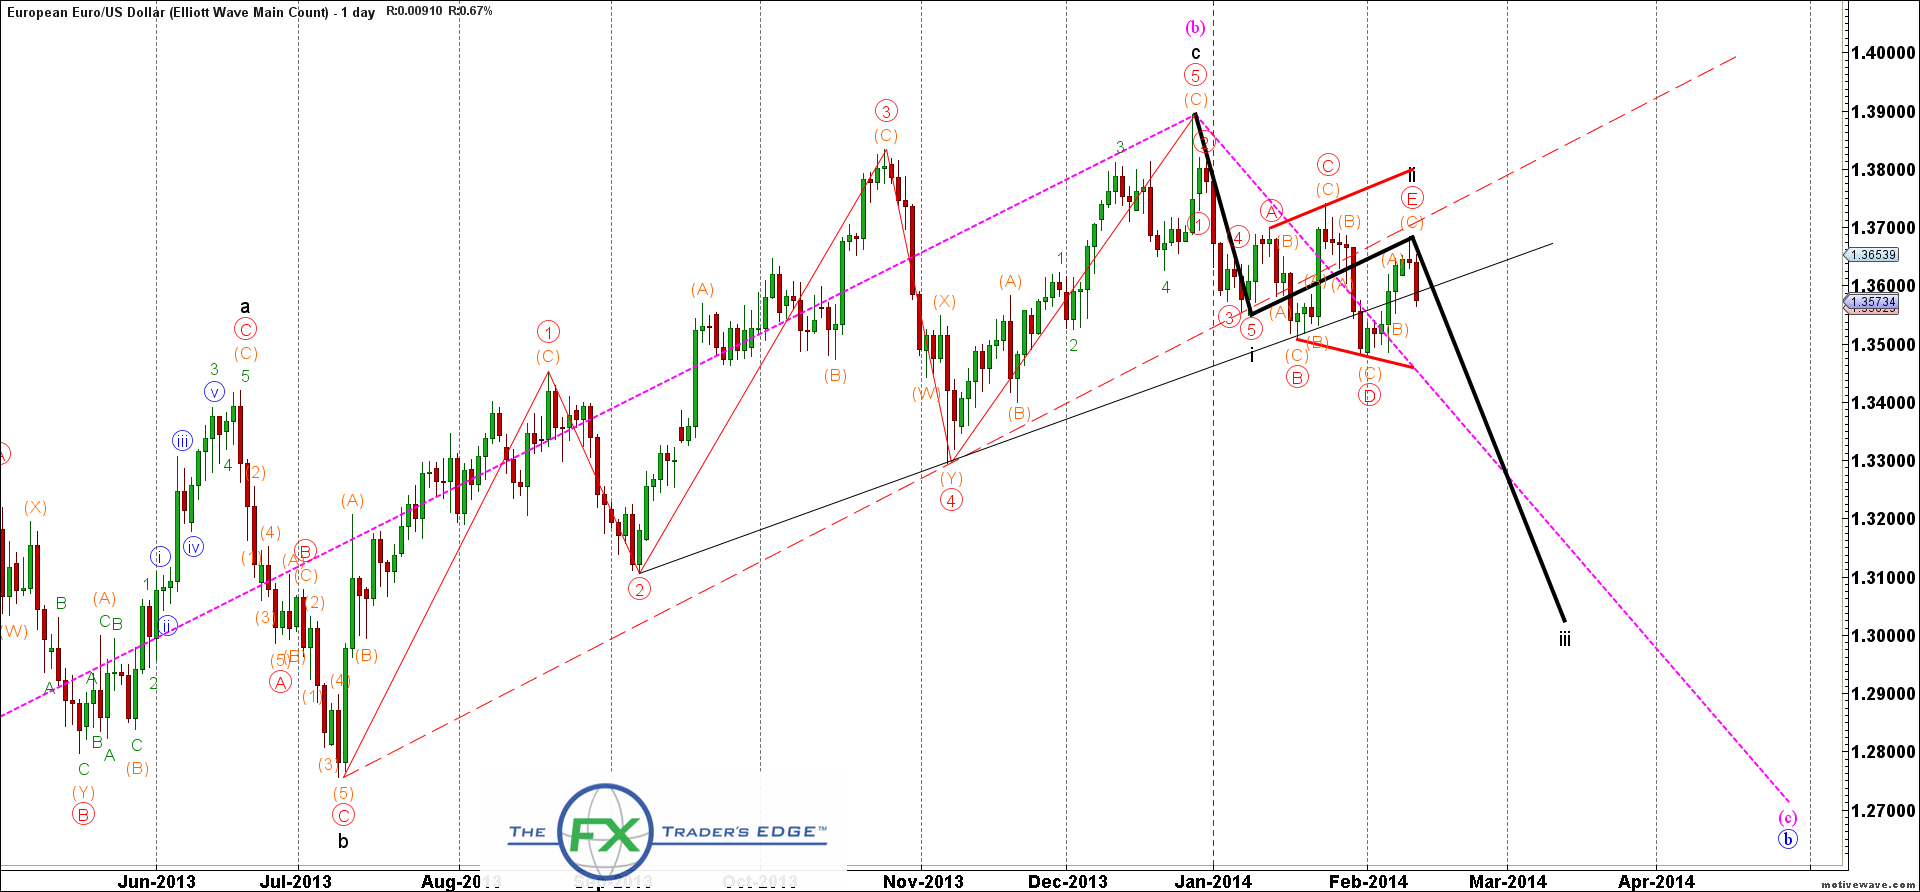 EURUSD-Elliott-Wave-Main-Count-Feb-12-0827-AM-1-day